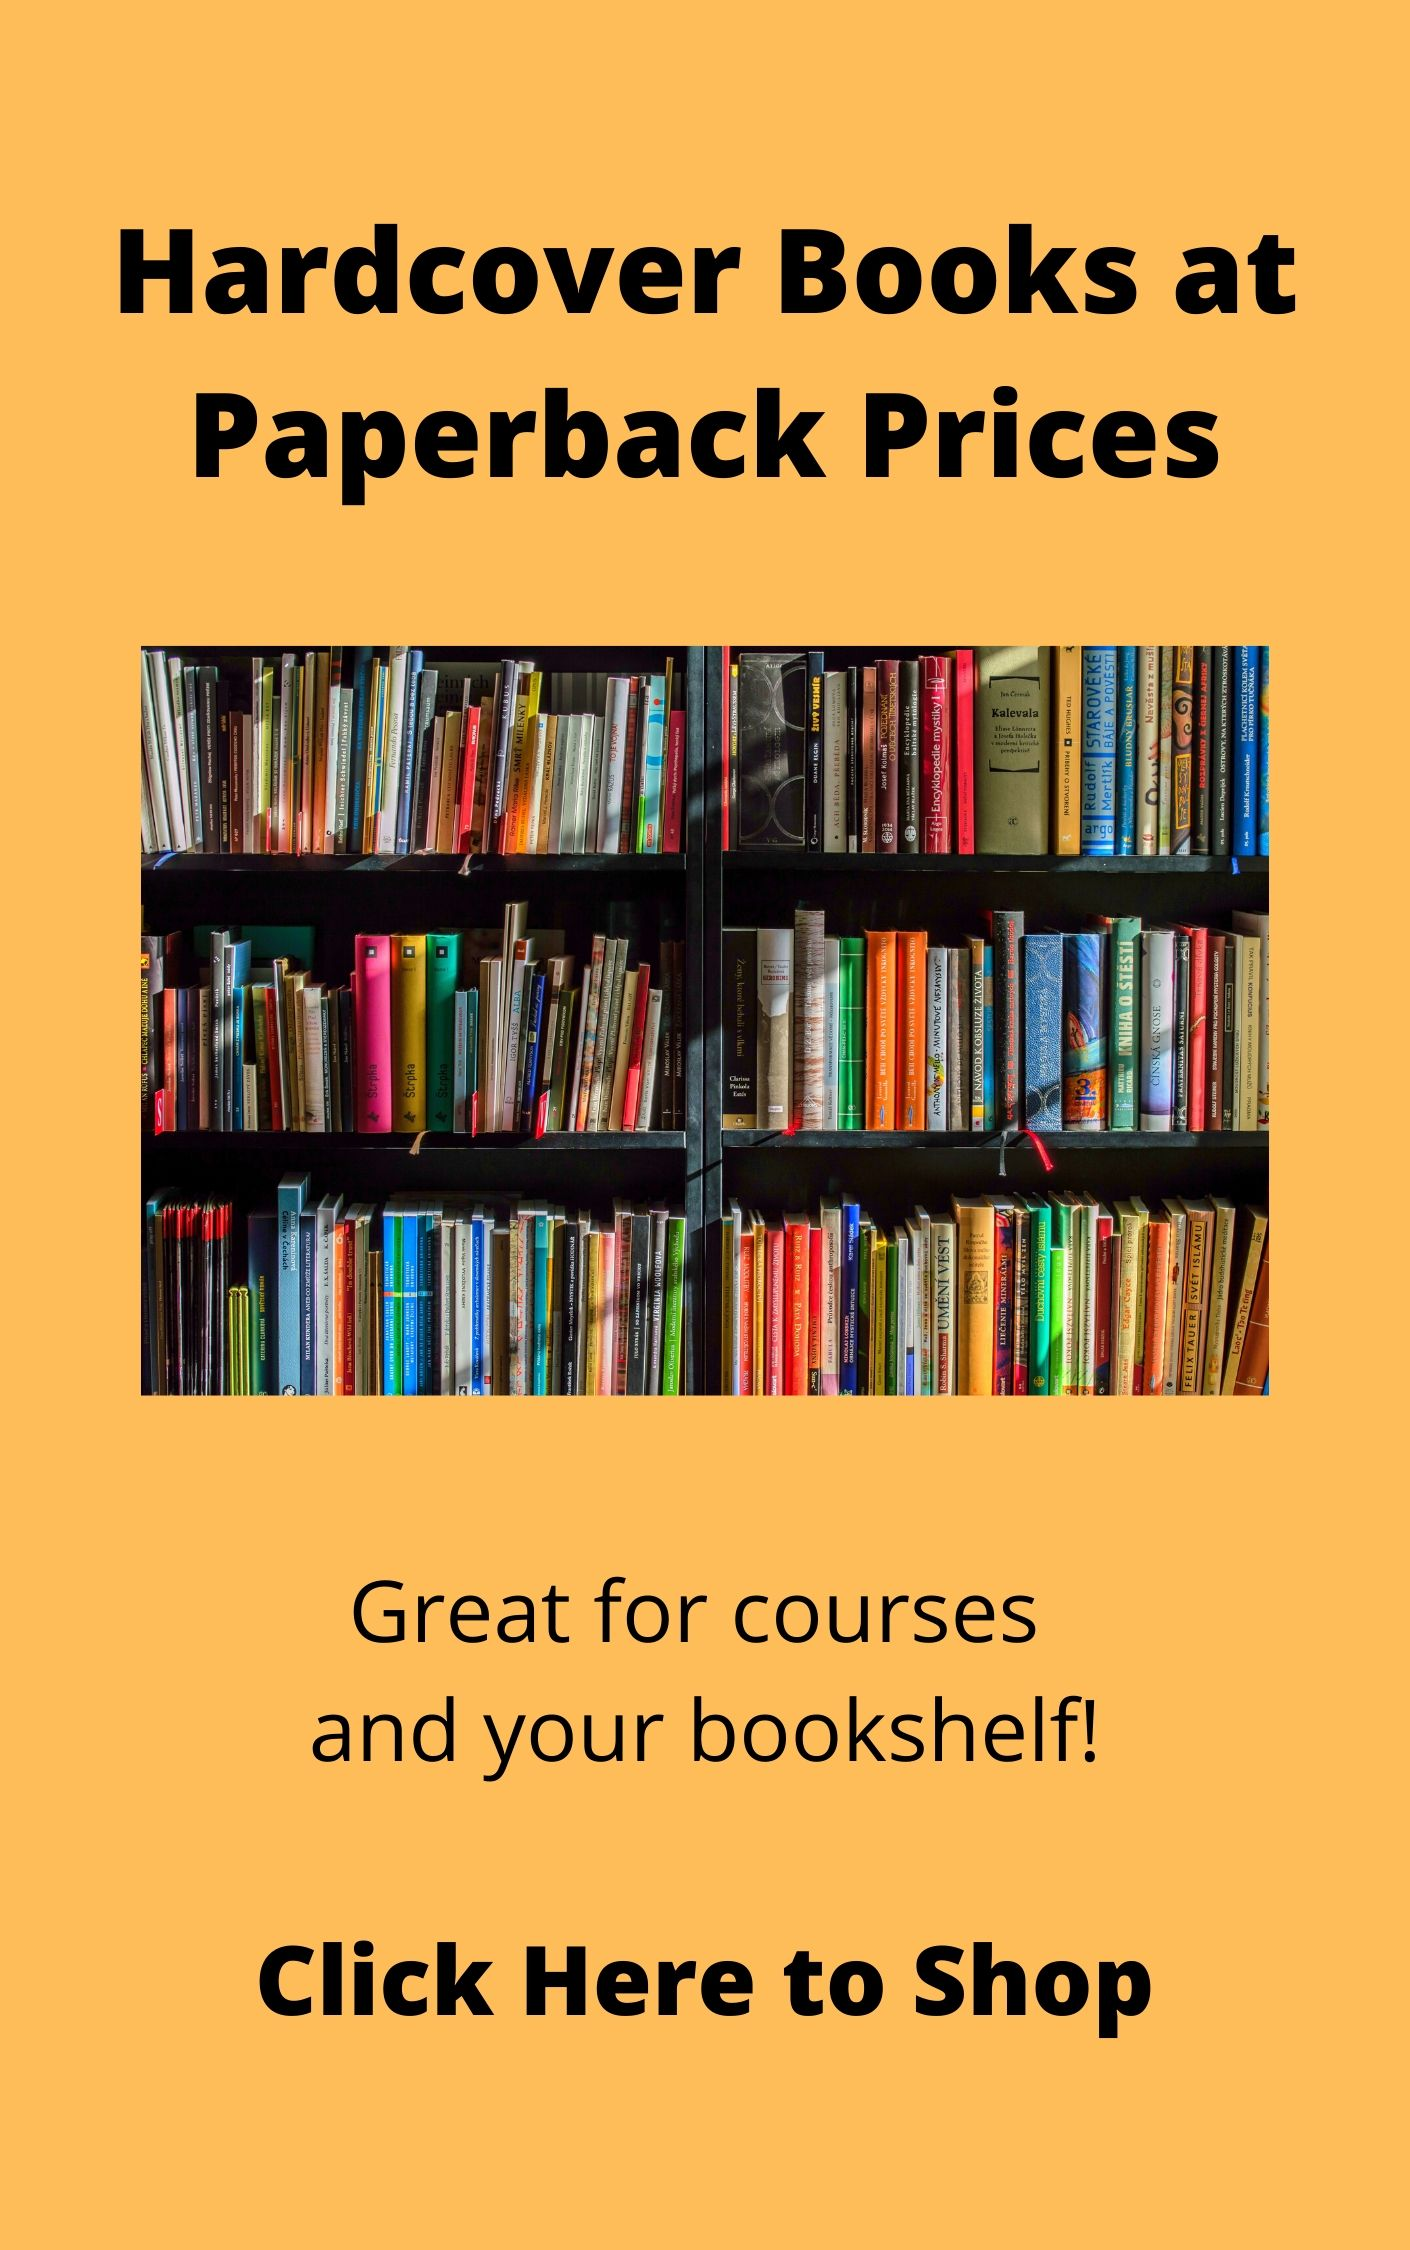 image card for our hadcover books that are now at paperback prices, online at http://gupress.gallaudet.edu/hardcover-at-paperback-prices.html